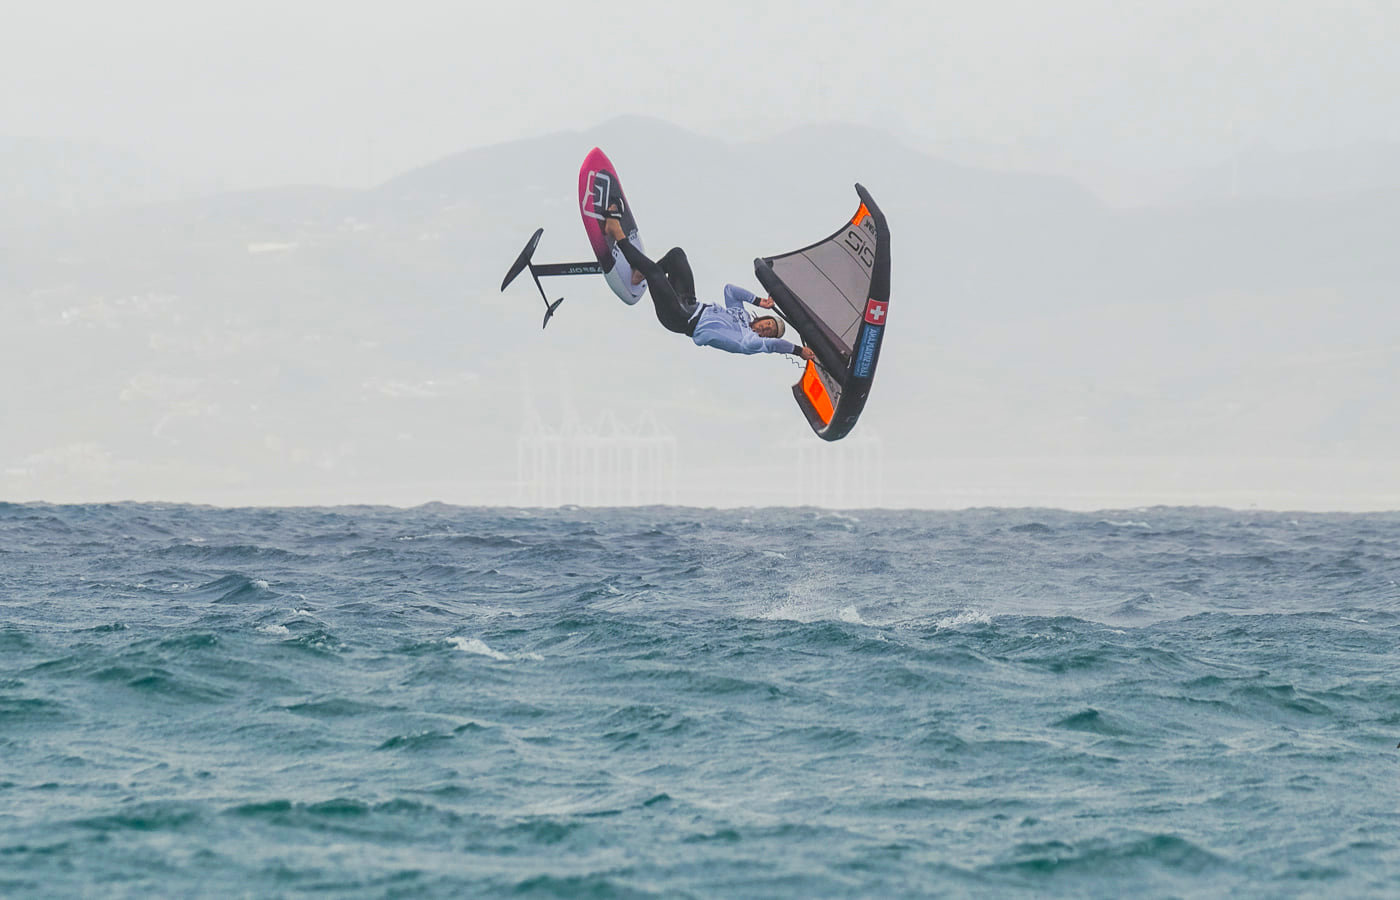 Balz Muller jumping on a wing foil session